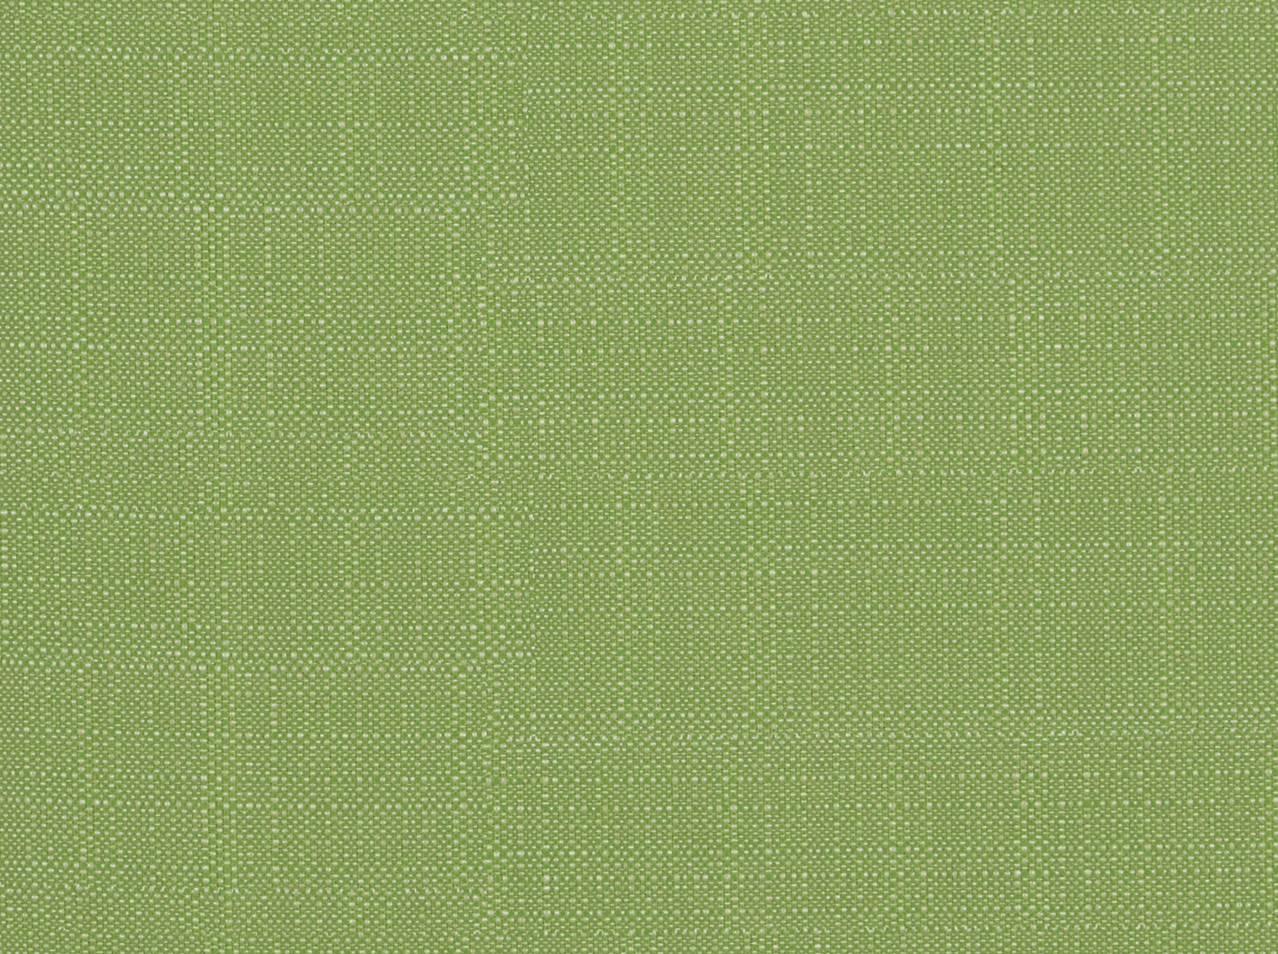 covington contract products color chartreuse sd clearwater